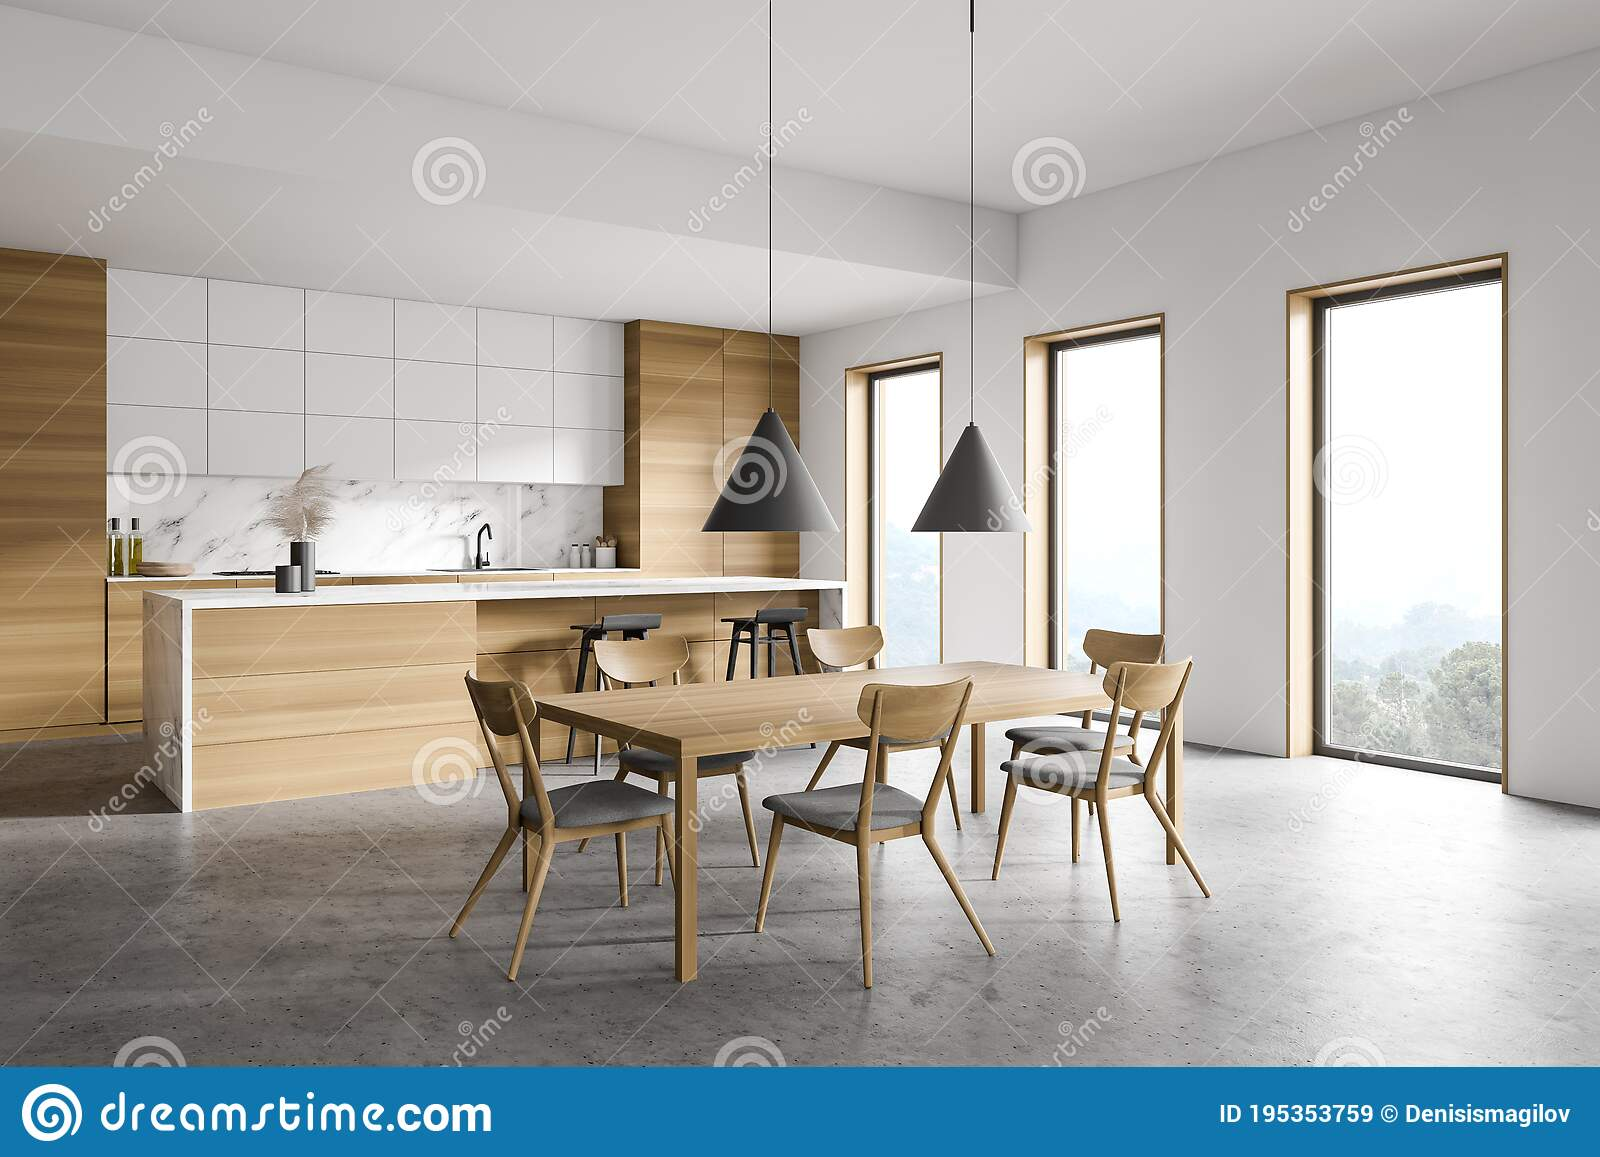 White And Wooden Kitchen Corner With Bar And Table Stock Illustration Illustration Of Glass Interior 195353759